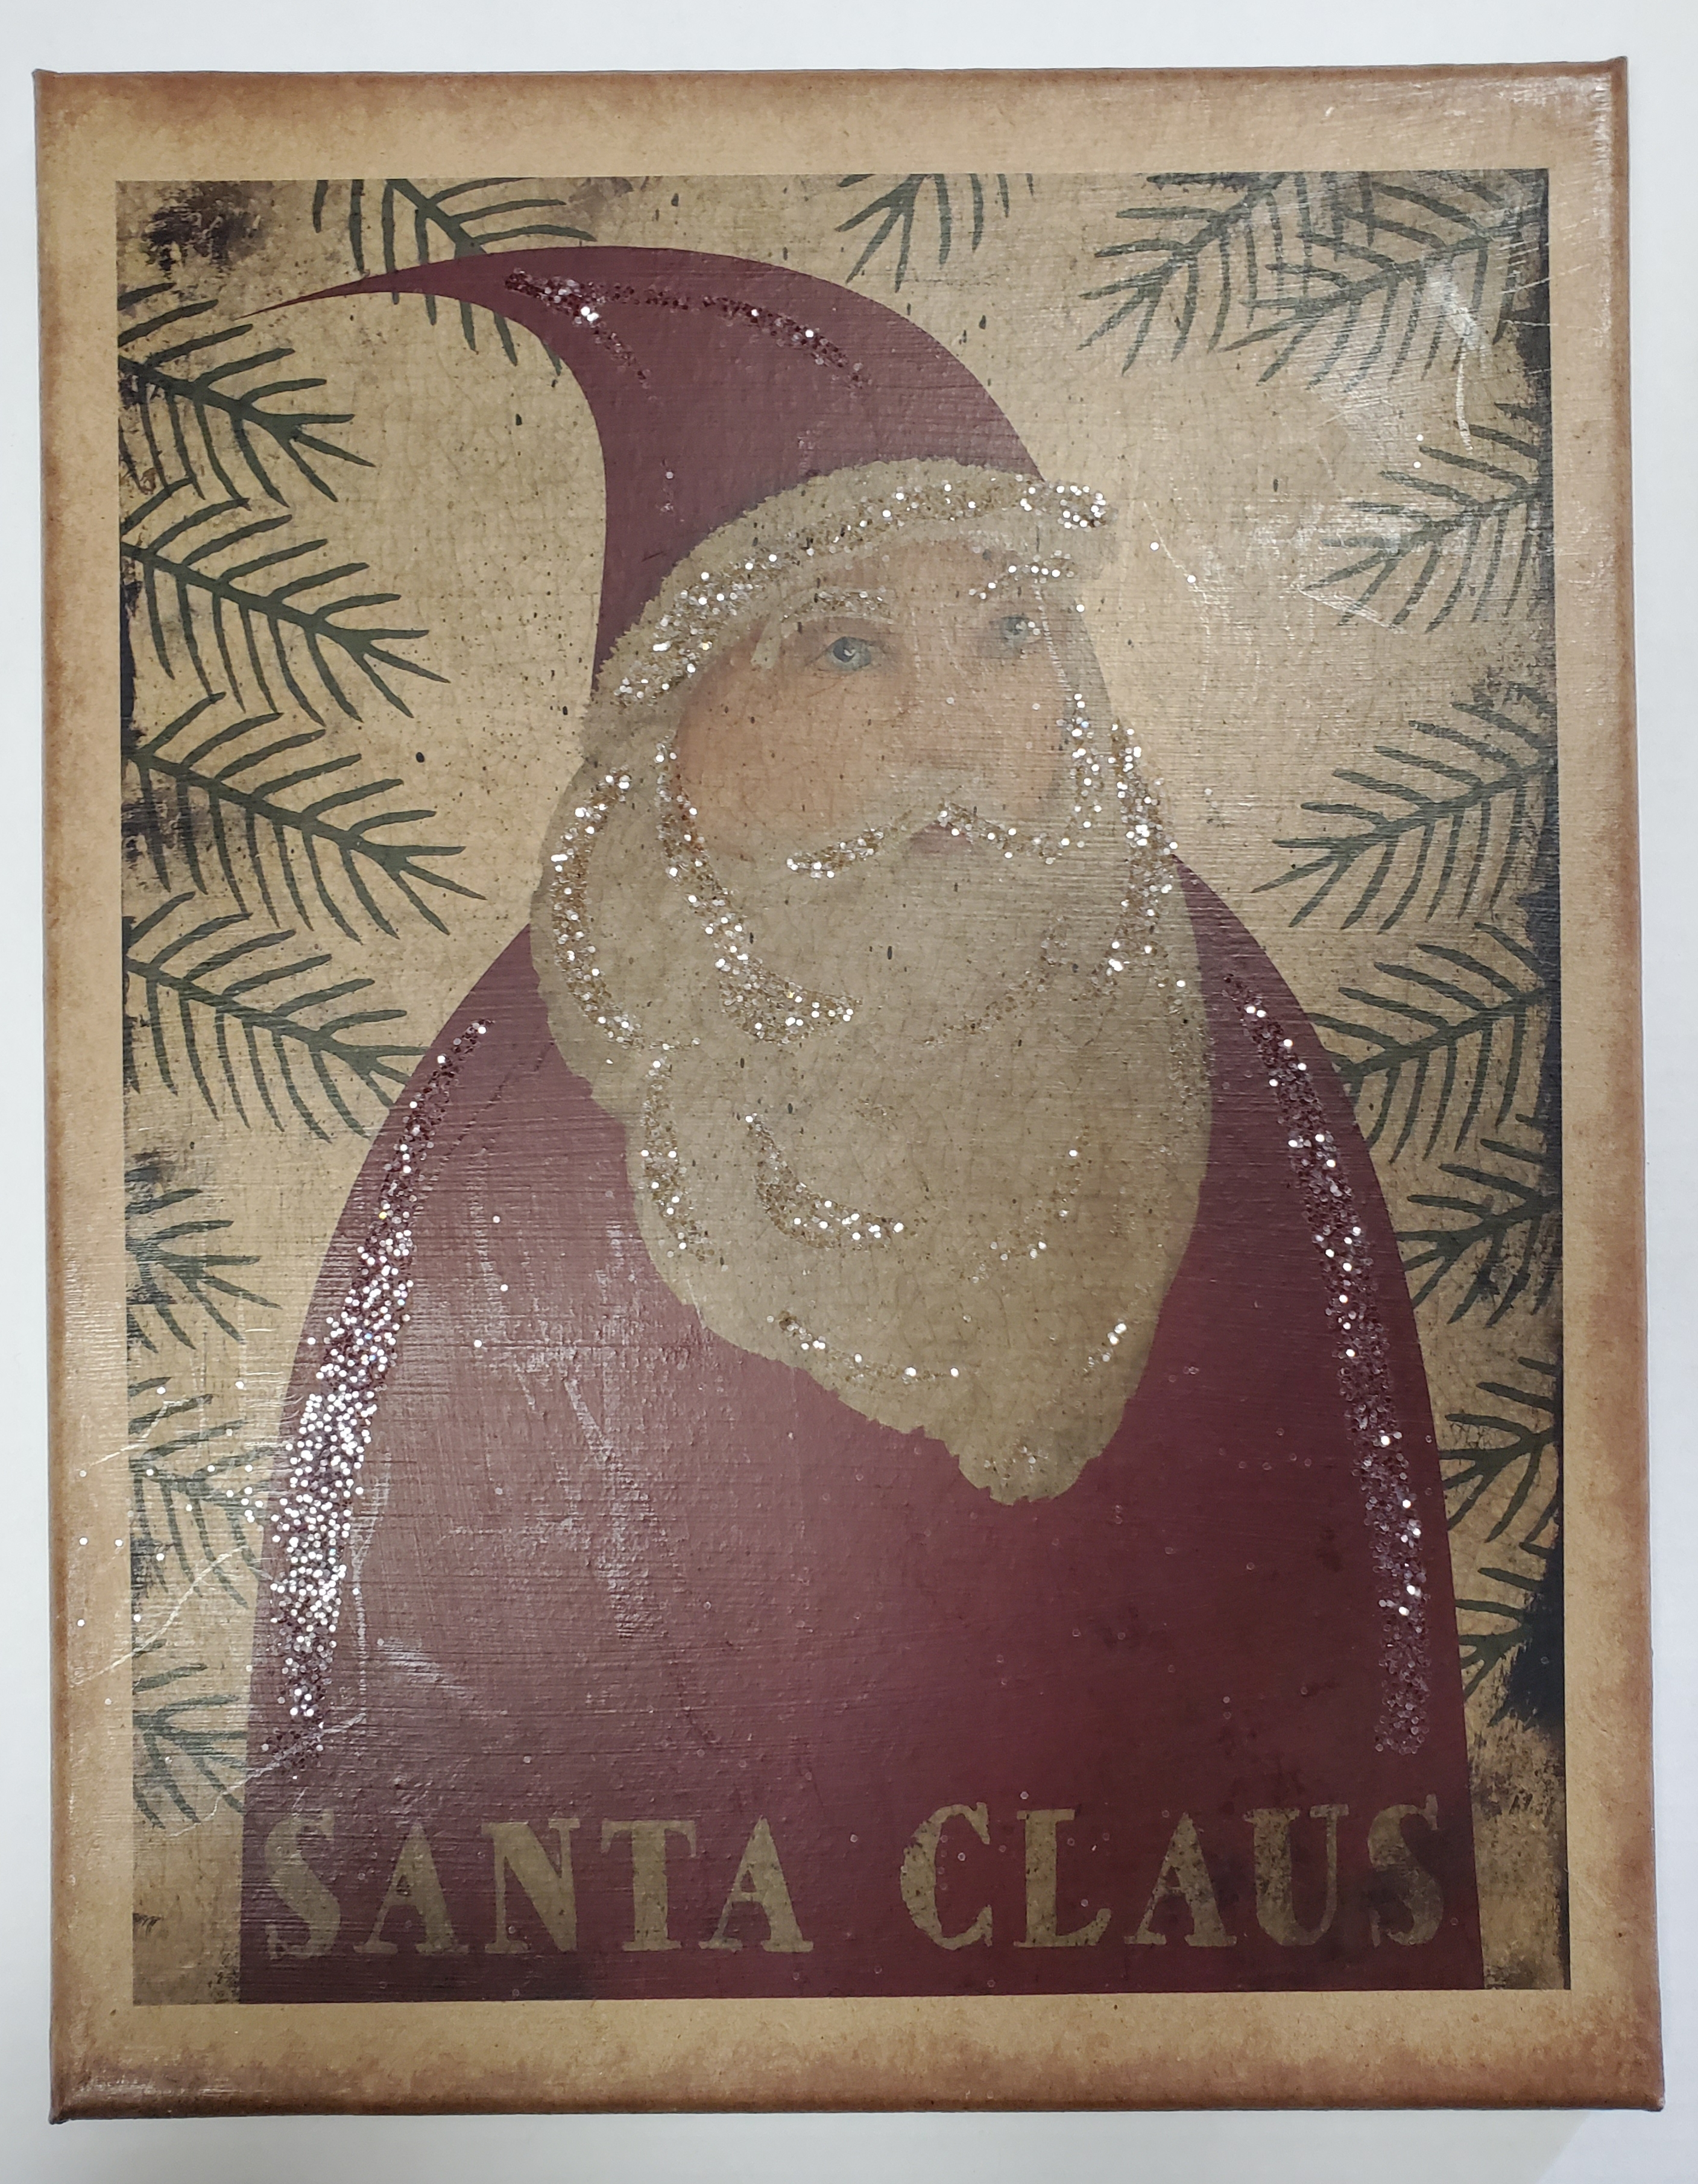 11X14 Primitive Santa Claus Canvas Print With Glitter